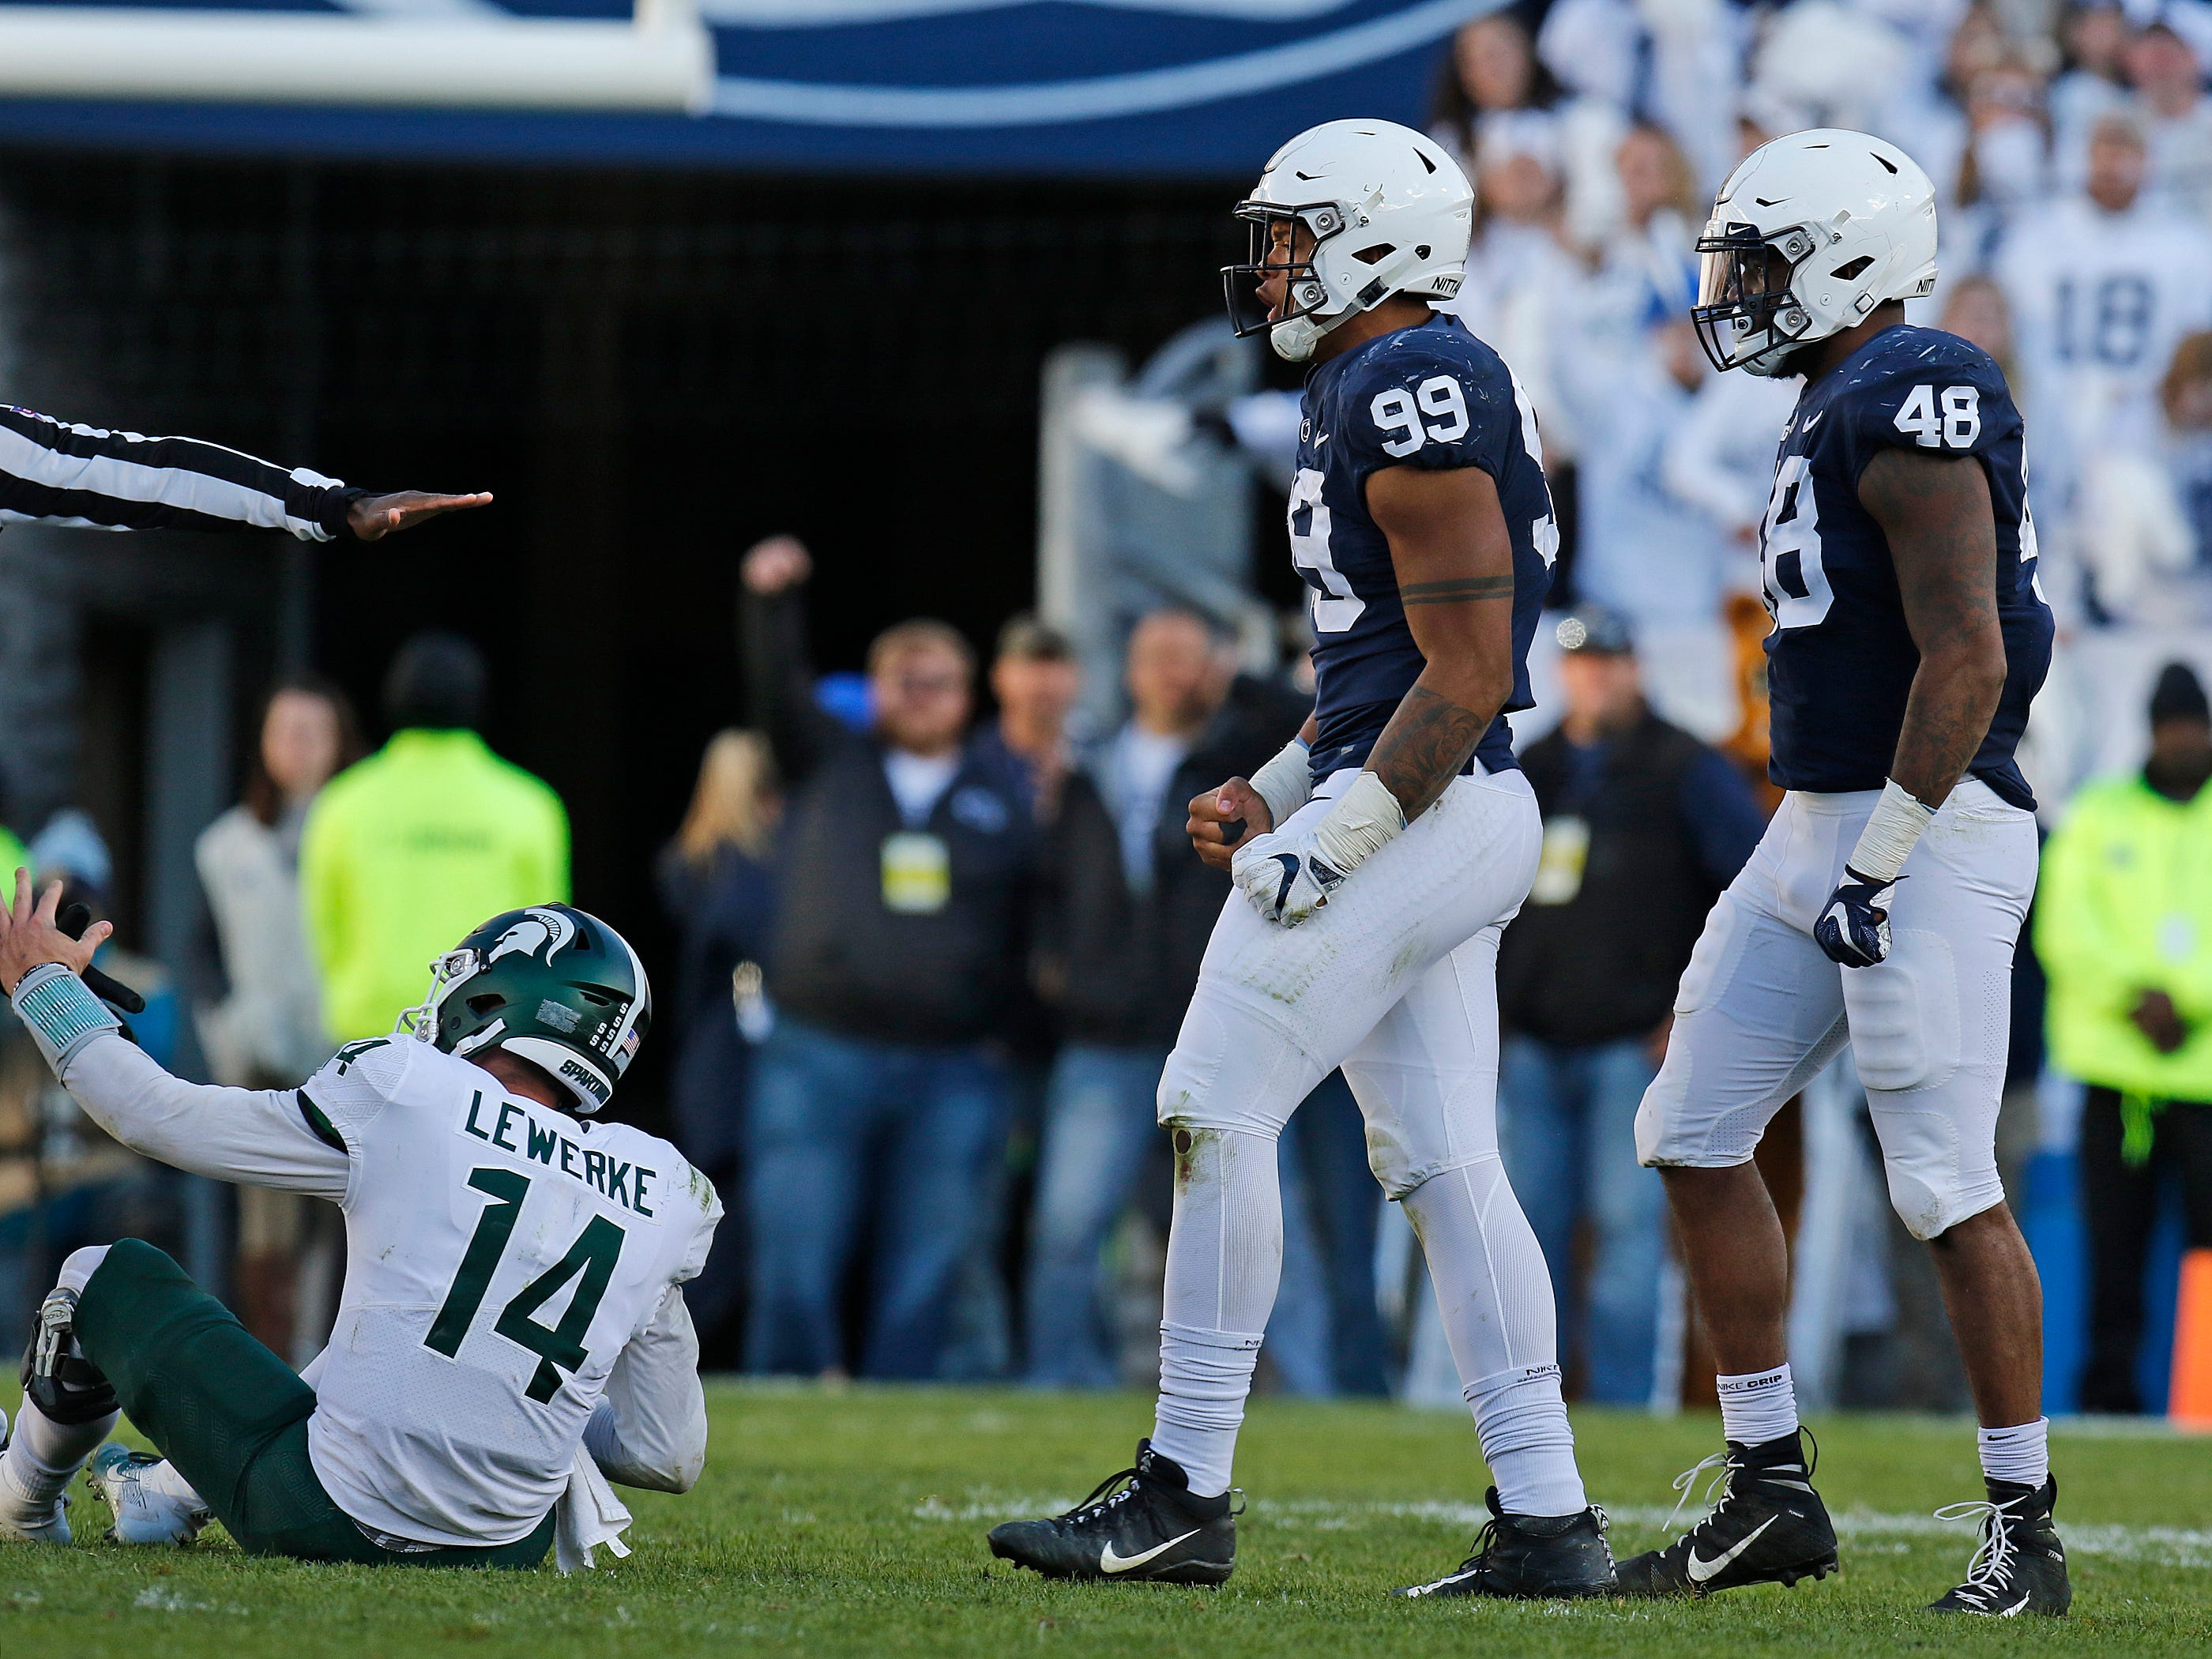 Yetur Gross-Matos #99 of the Penn State Nittany Lions celebrates against Brian Lewerke #14 of the Michigan State Spartans on October 13, 2018 at Beaver Stadium in State College, Pennsylvania.